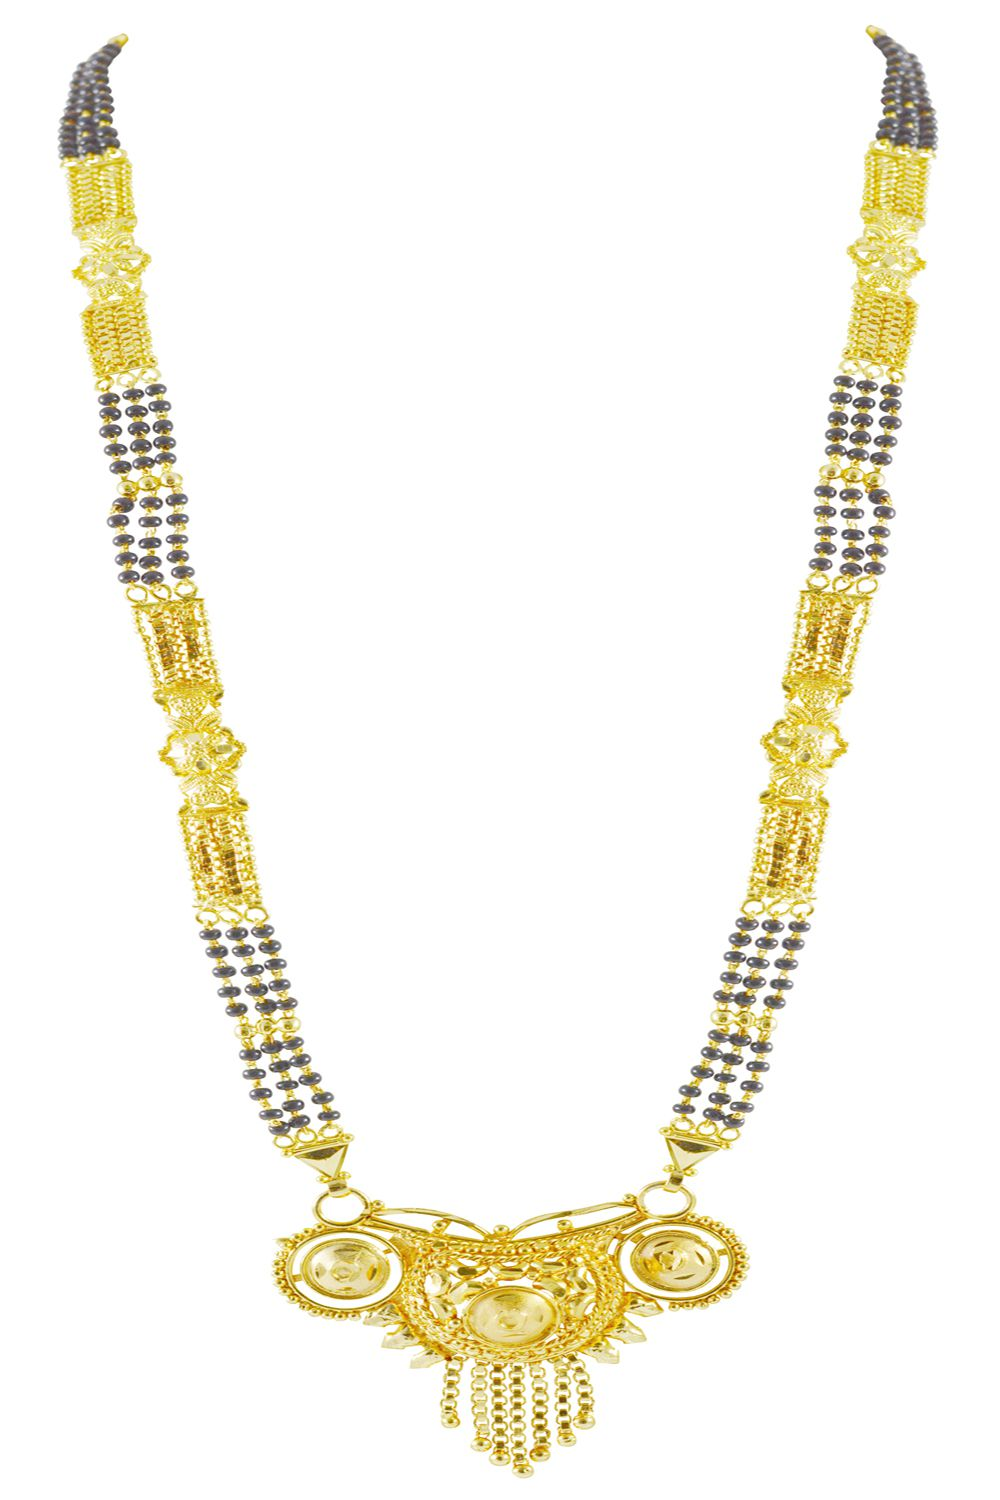 Rejewel Gold Plated Pendant With Multilayer Mangalsutra Chain